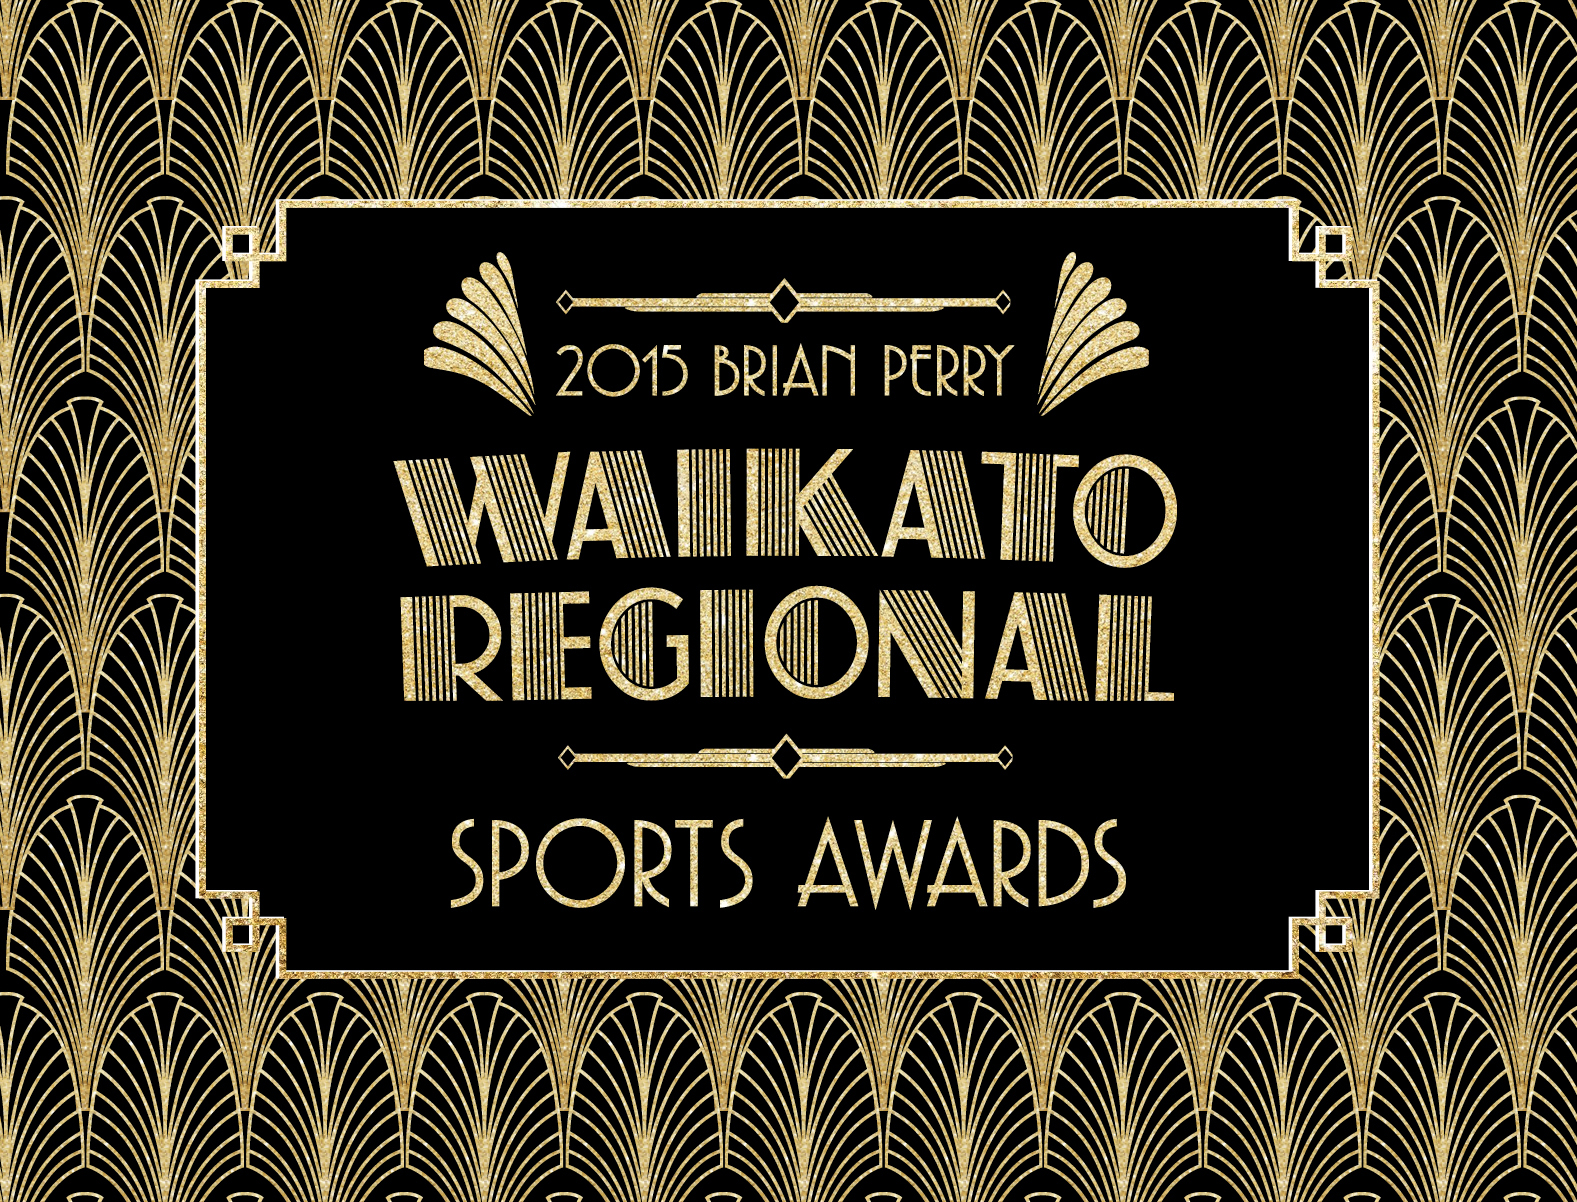 Finalists announced for 2015 Brian Perry Waikato Regional Sports Awards